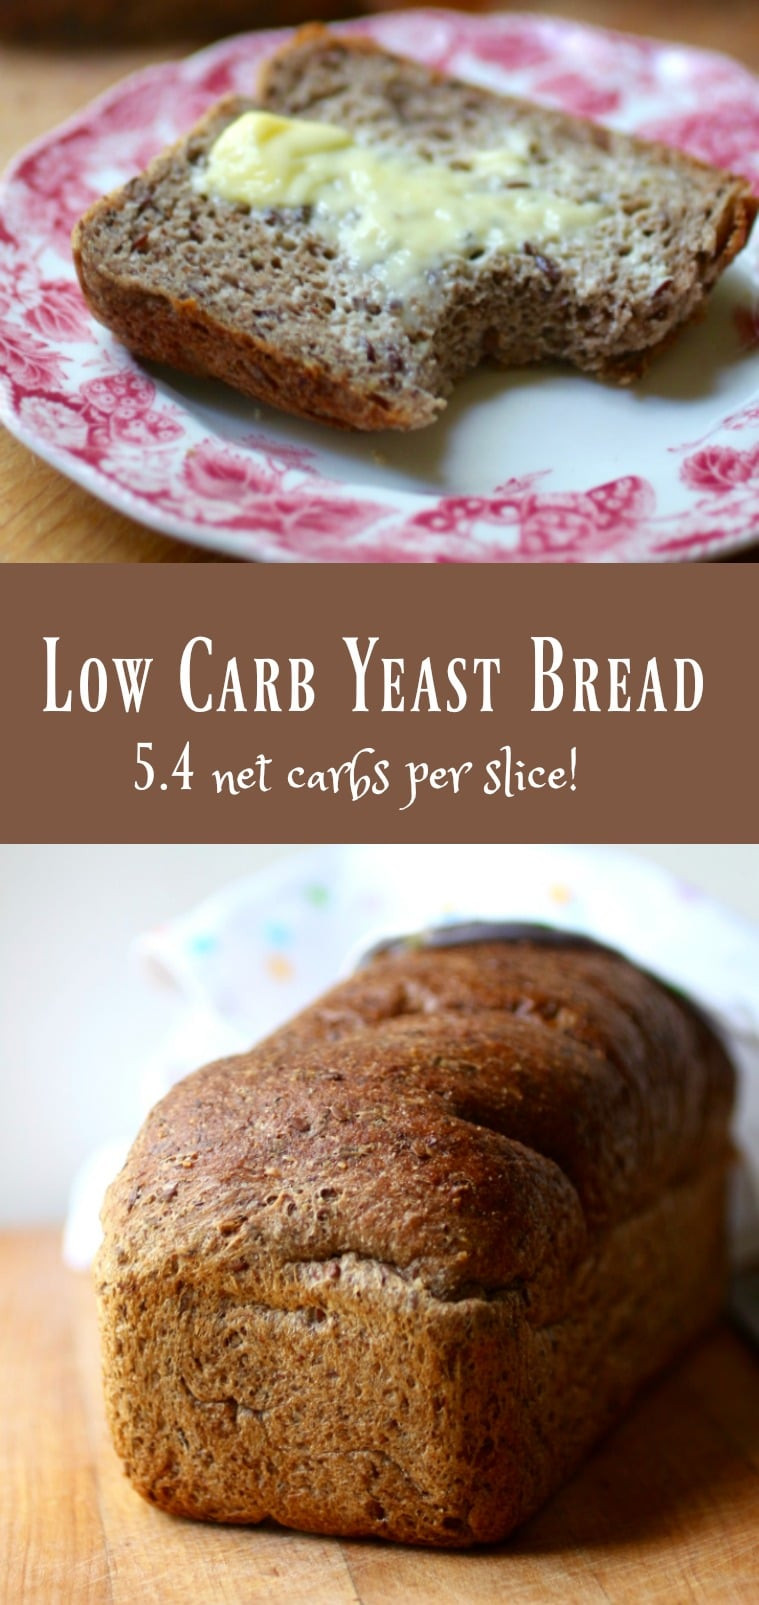 Low Carb Bread Maker Recipes  Low Carb Yeast Bread Keto Sandwich Bread lowcarb ology